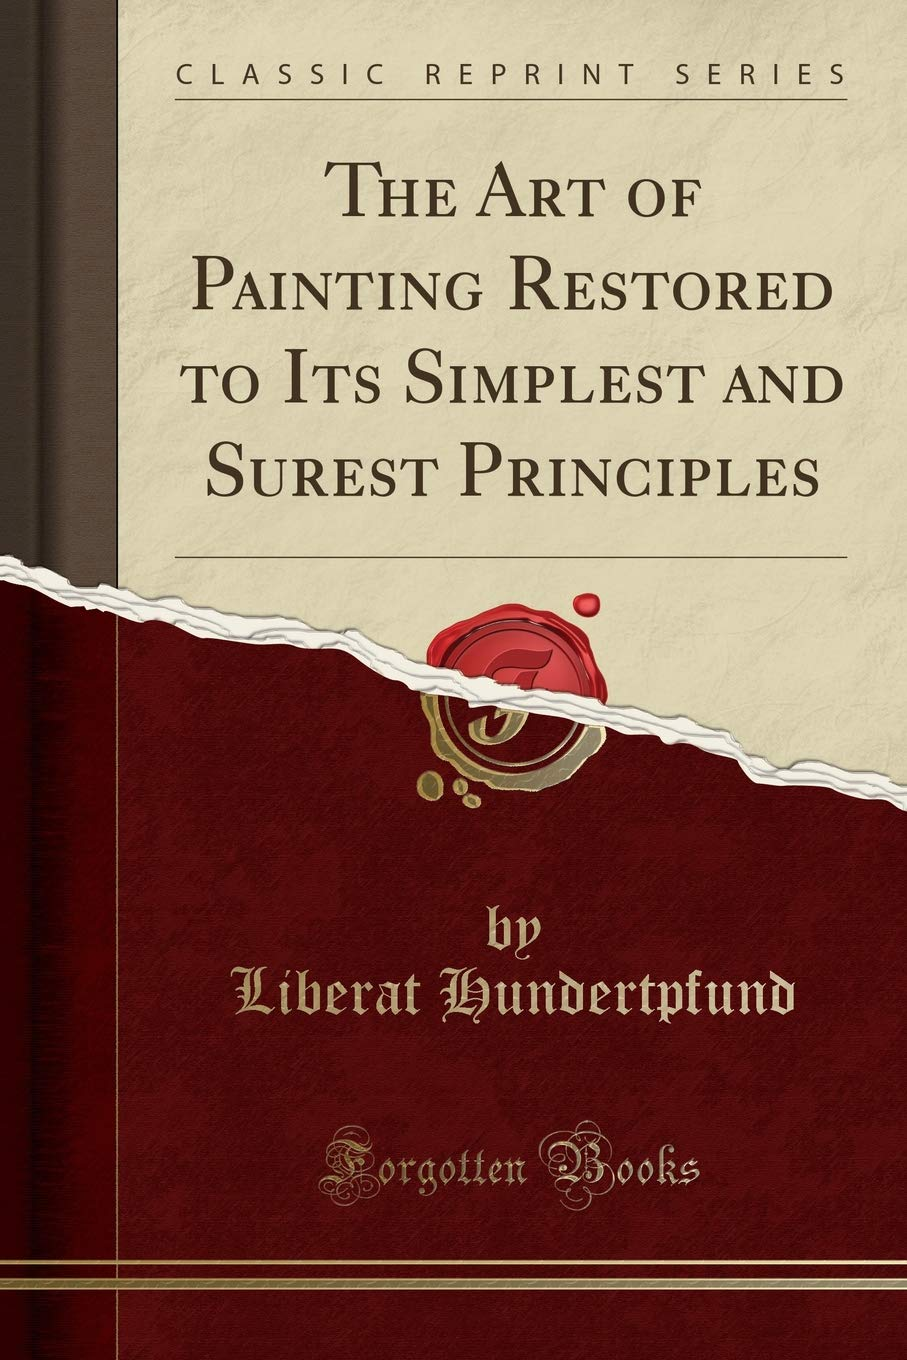 Download The Art of Painting Restored to Its Simplest and Surest Principles (Classic Reprint) ebook